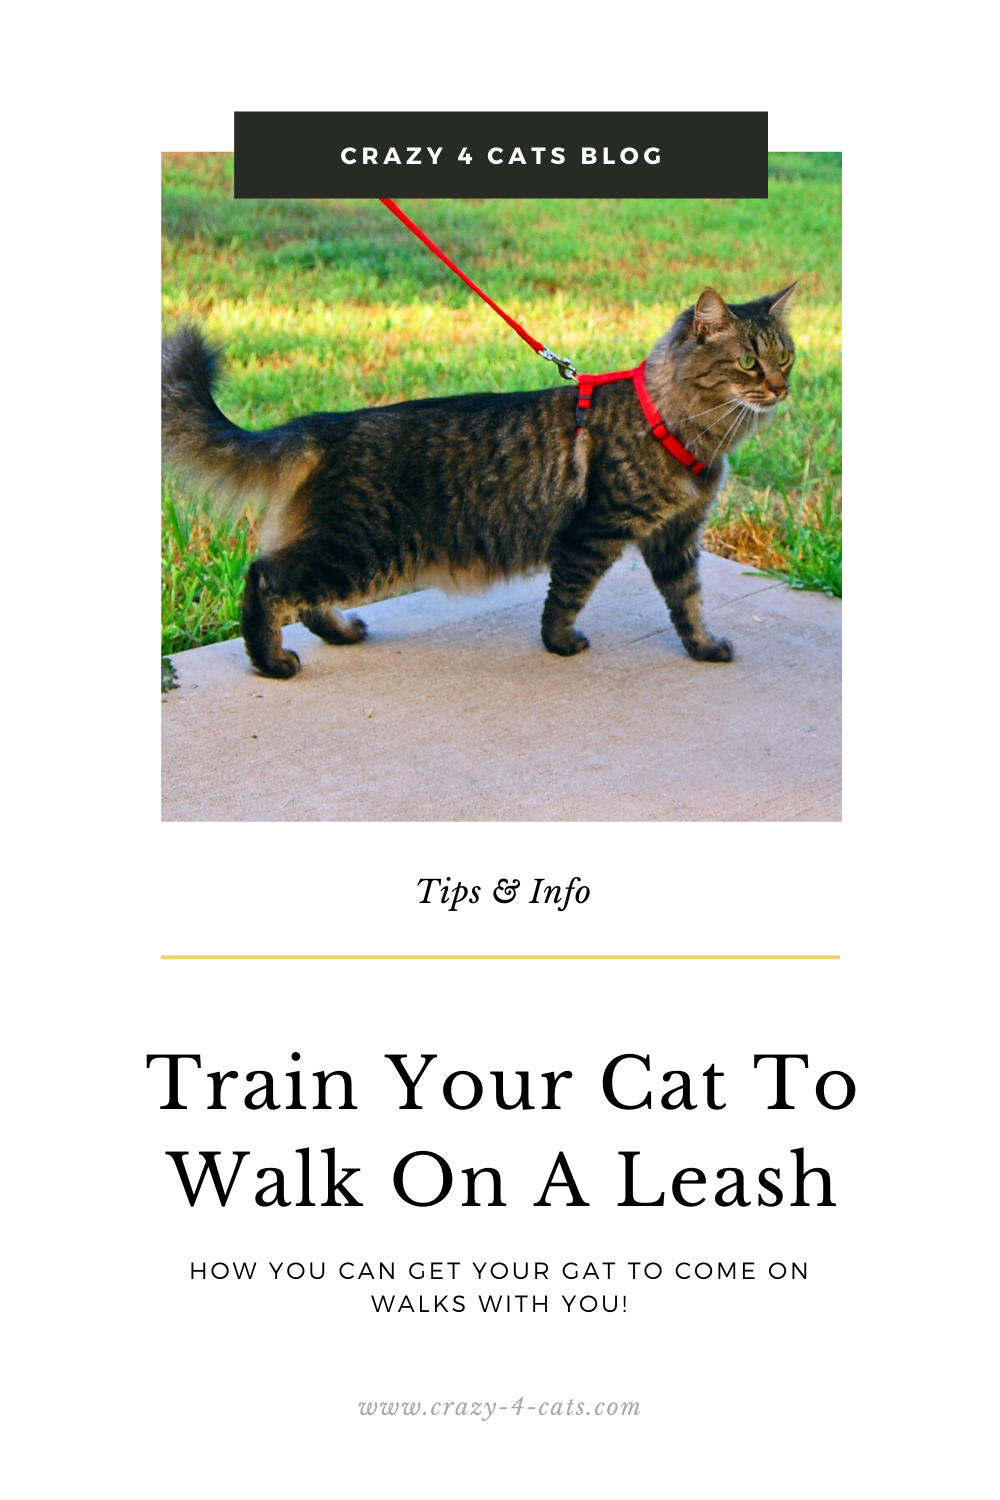 How To Train Your Cat On A Leash In 2020 Cat Leash Cat Theme Adventure Cat